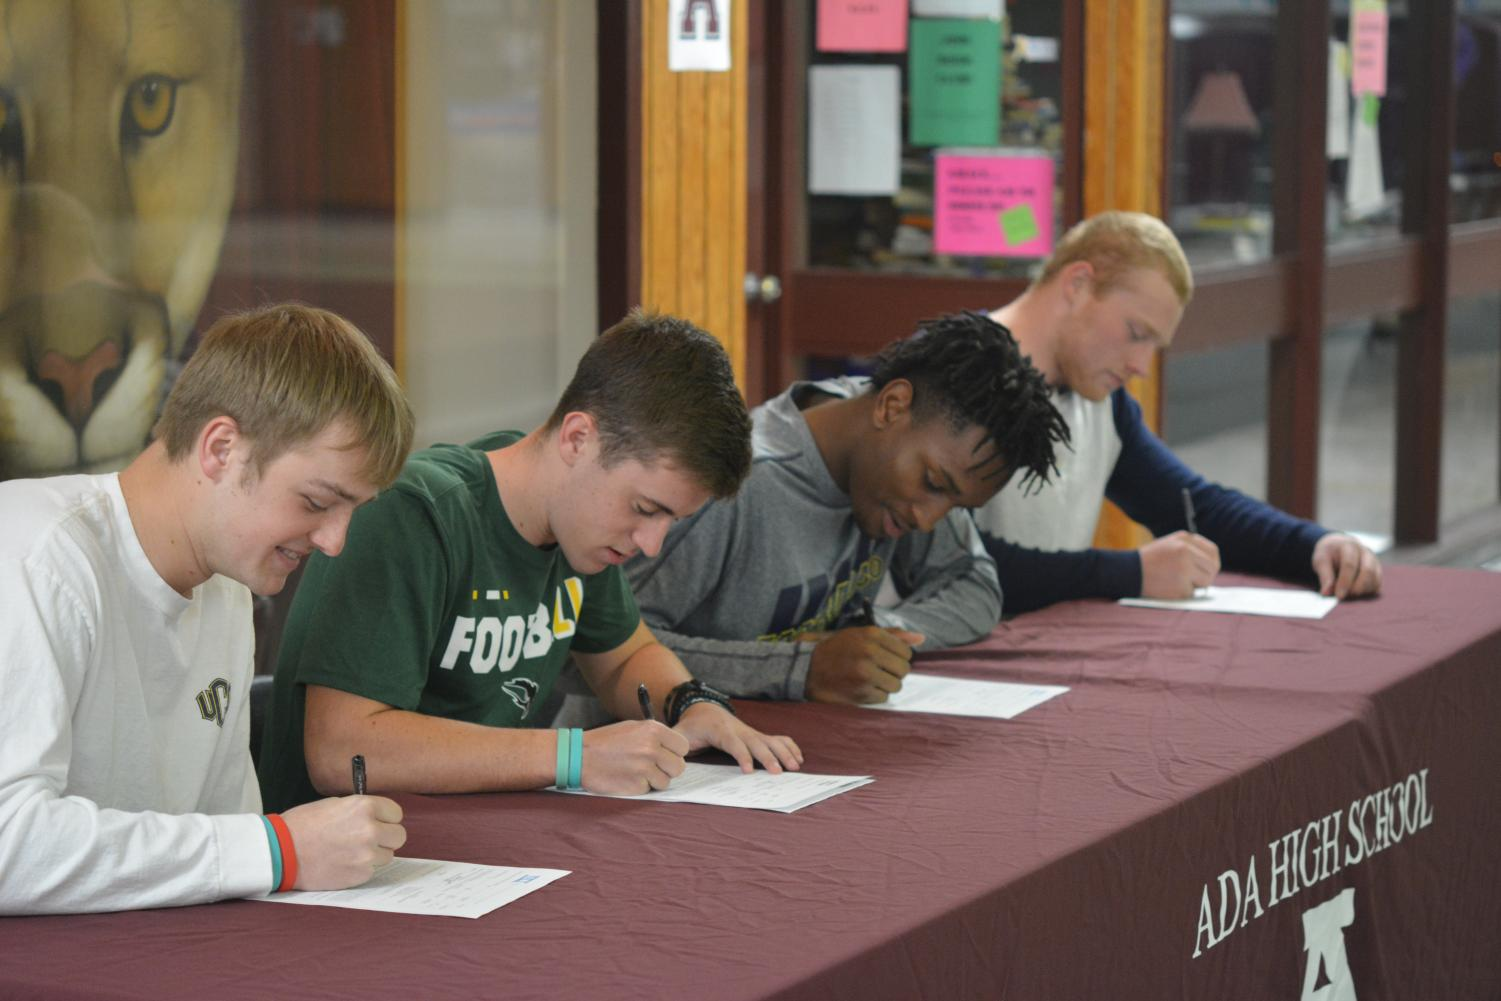 On National Signing Day, senior football players Christian Maloy, Jackson McFarlane, Kylen Cooper and Jacob Smalley put pen to paper, committing to their respective future teams.